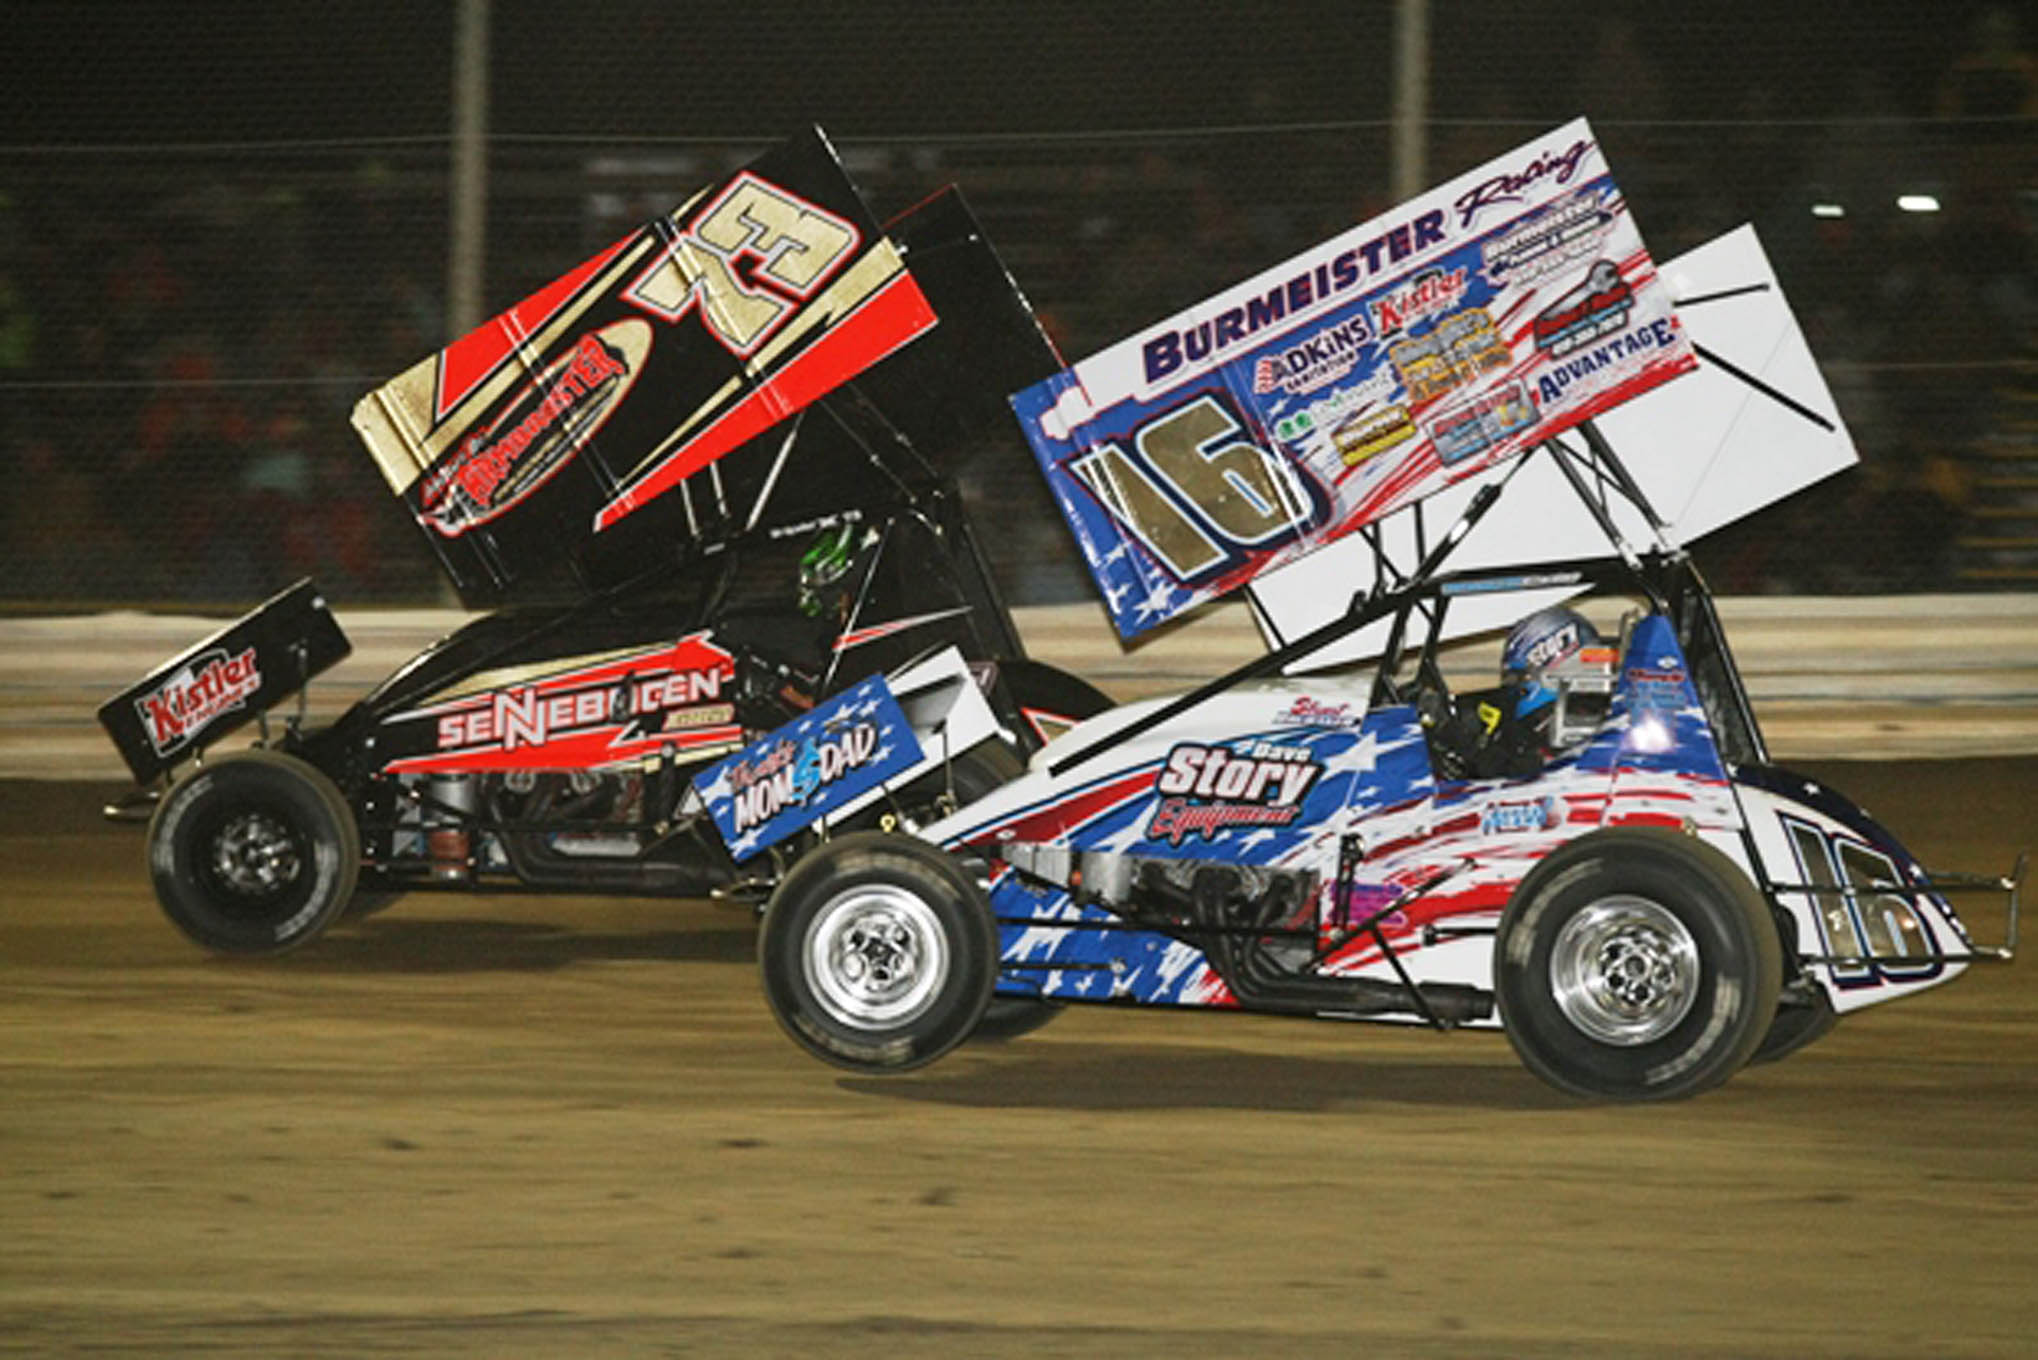 Brubaker and Andrews battle in the Top Five of the A Main.